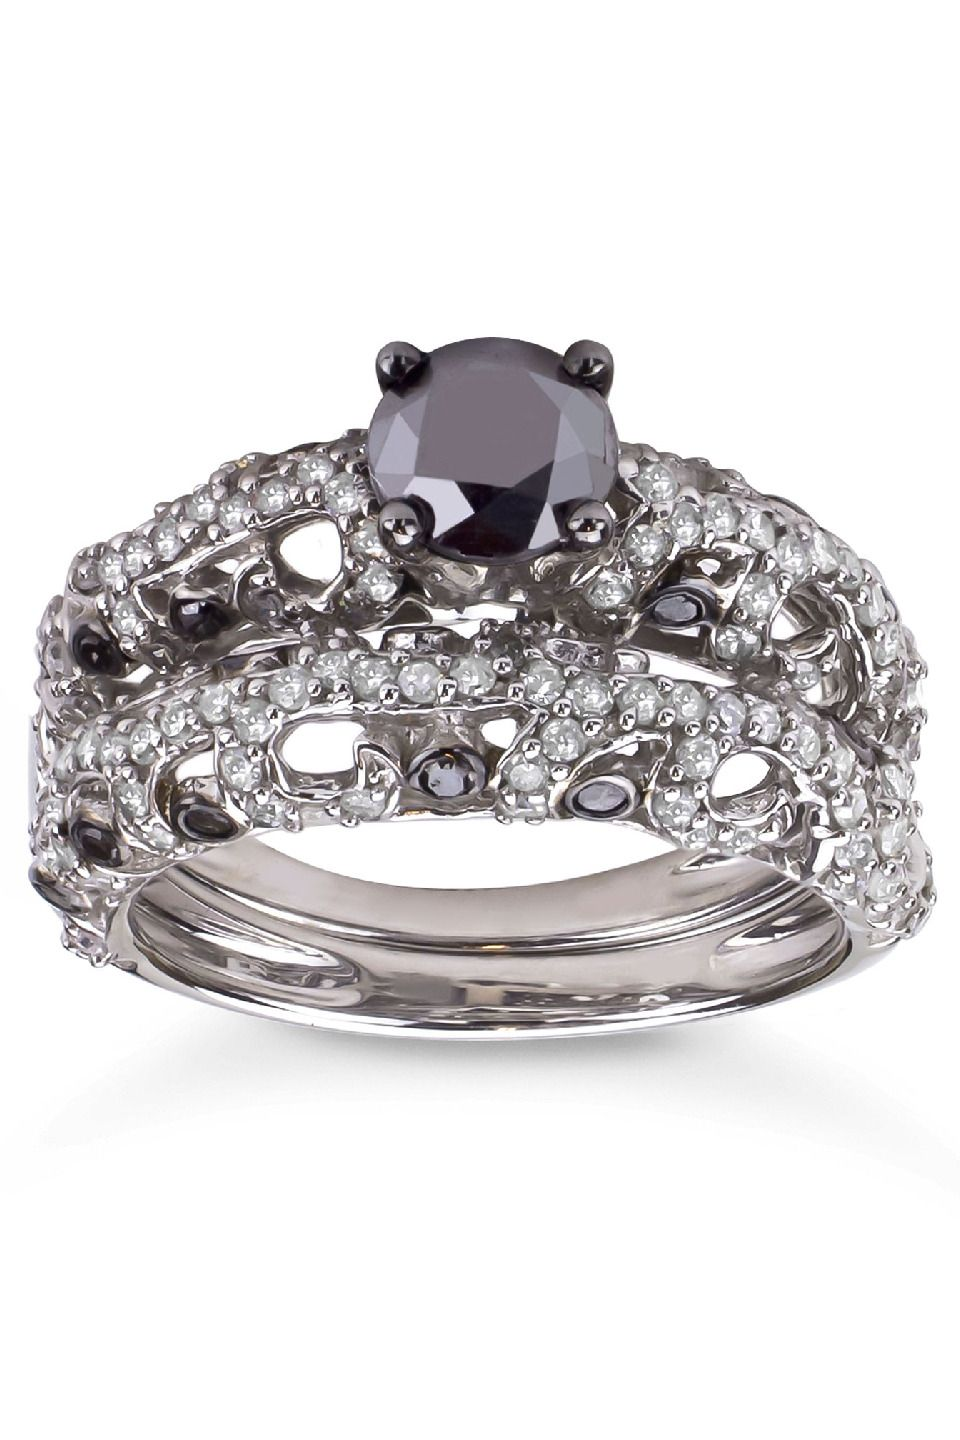 ct black and white diamond bridal ring set in silver beyond the